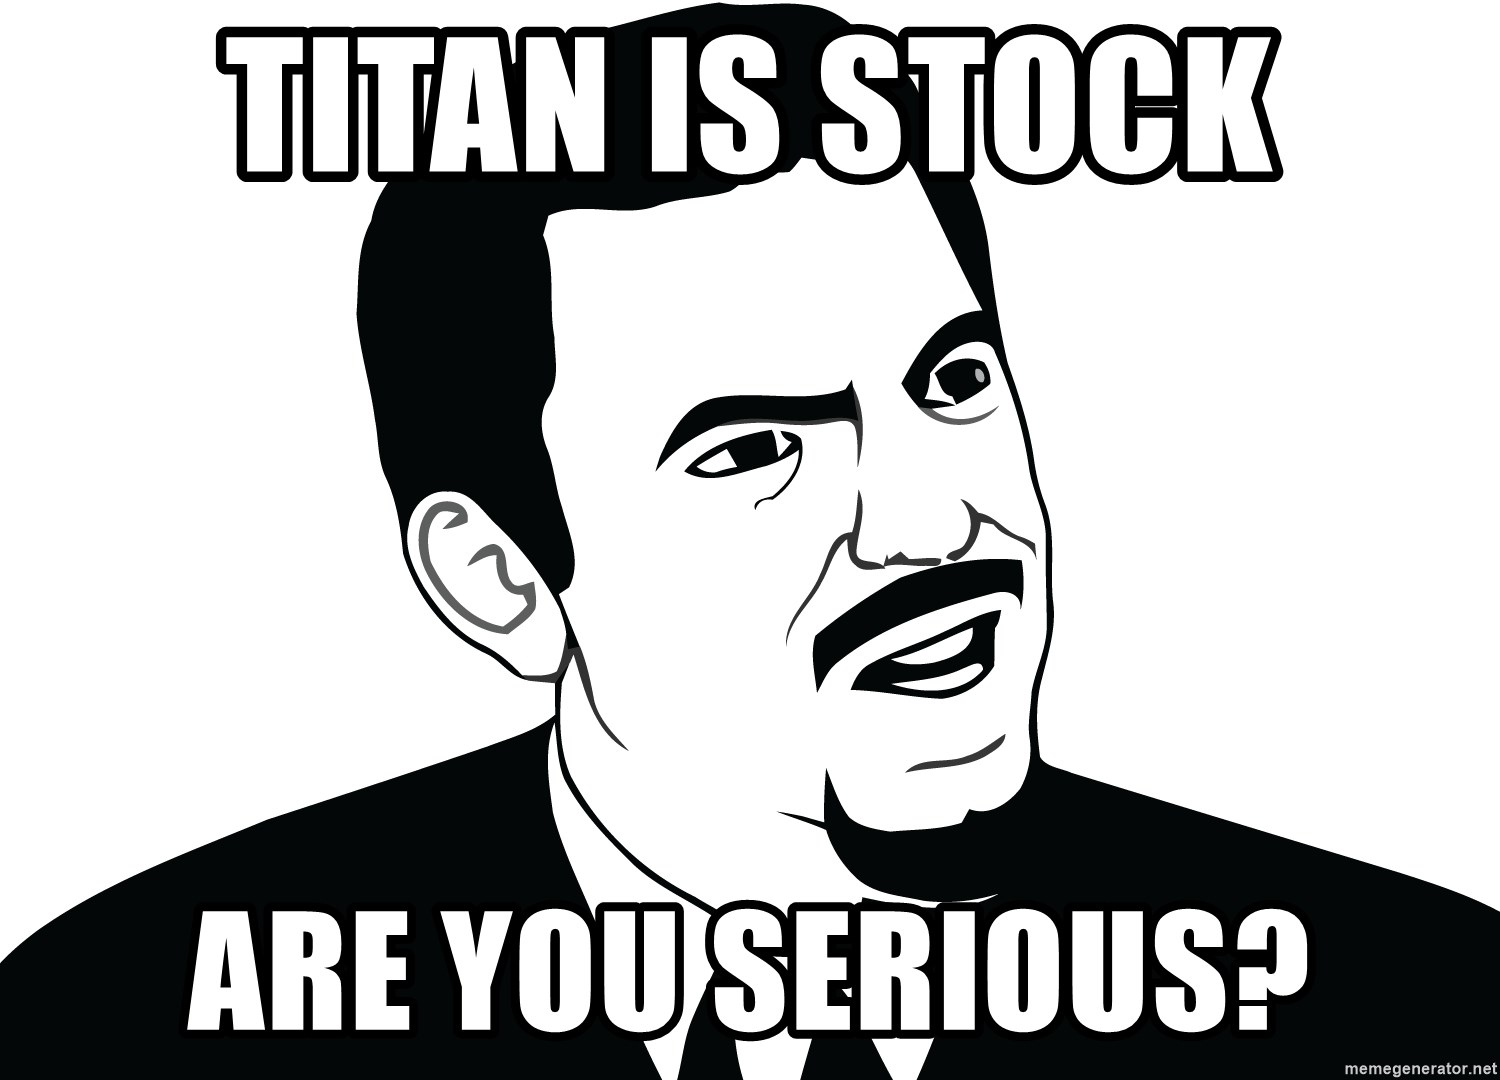 Are you serious face  - Titan is stock are you serious?